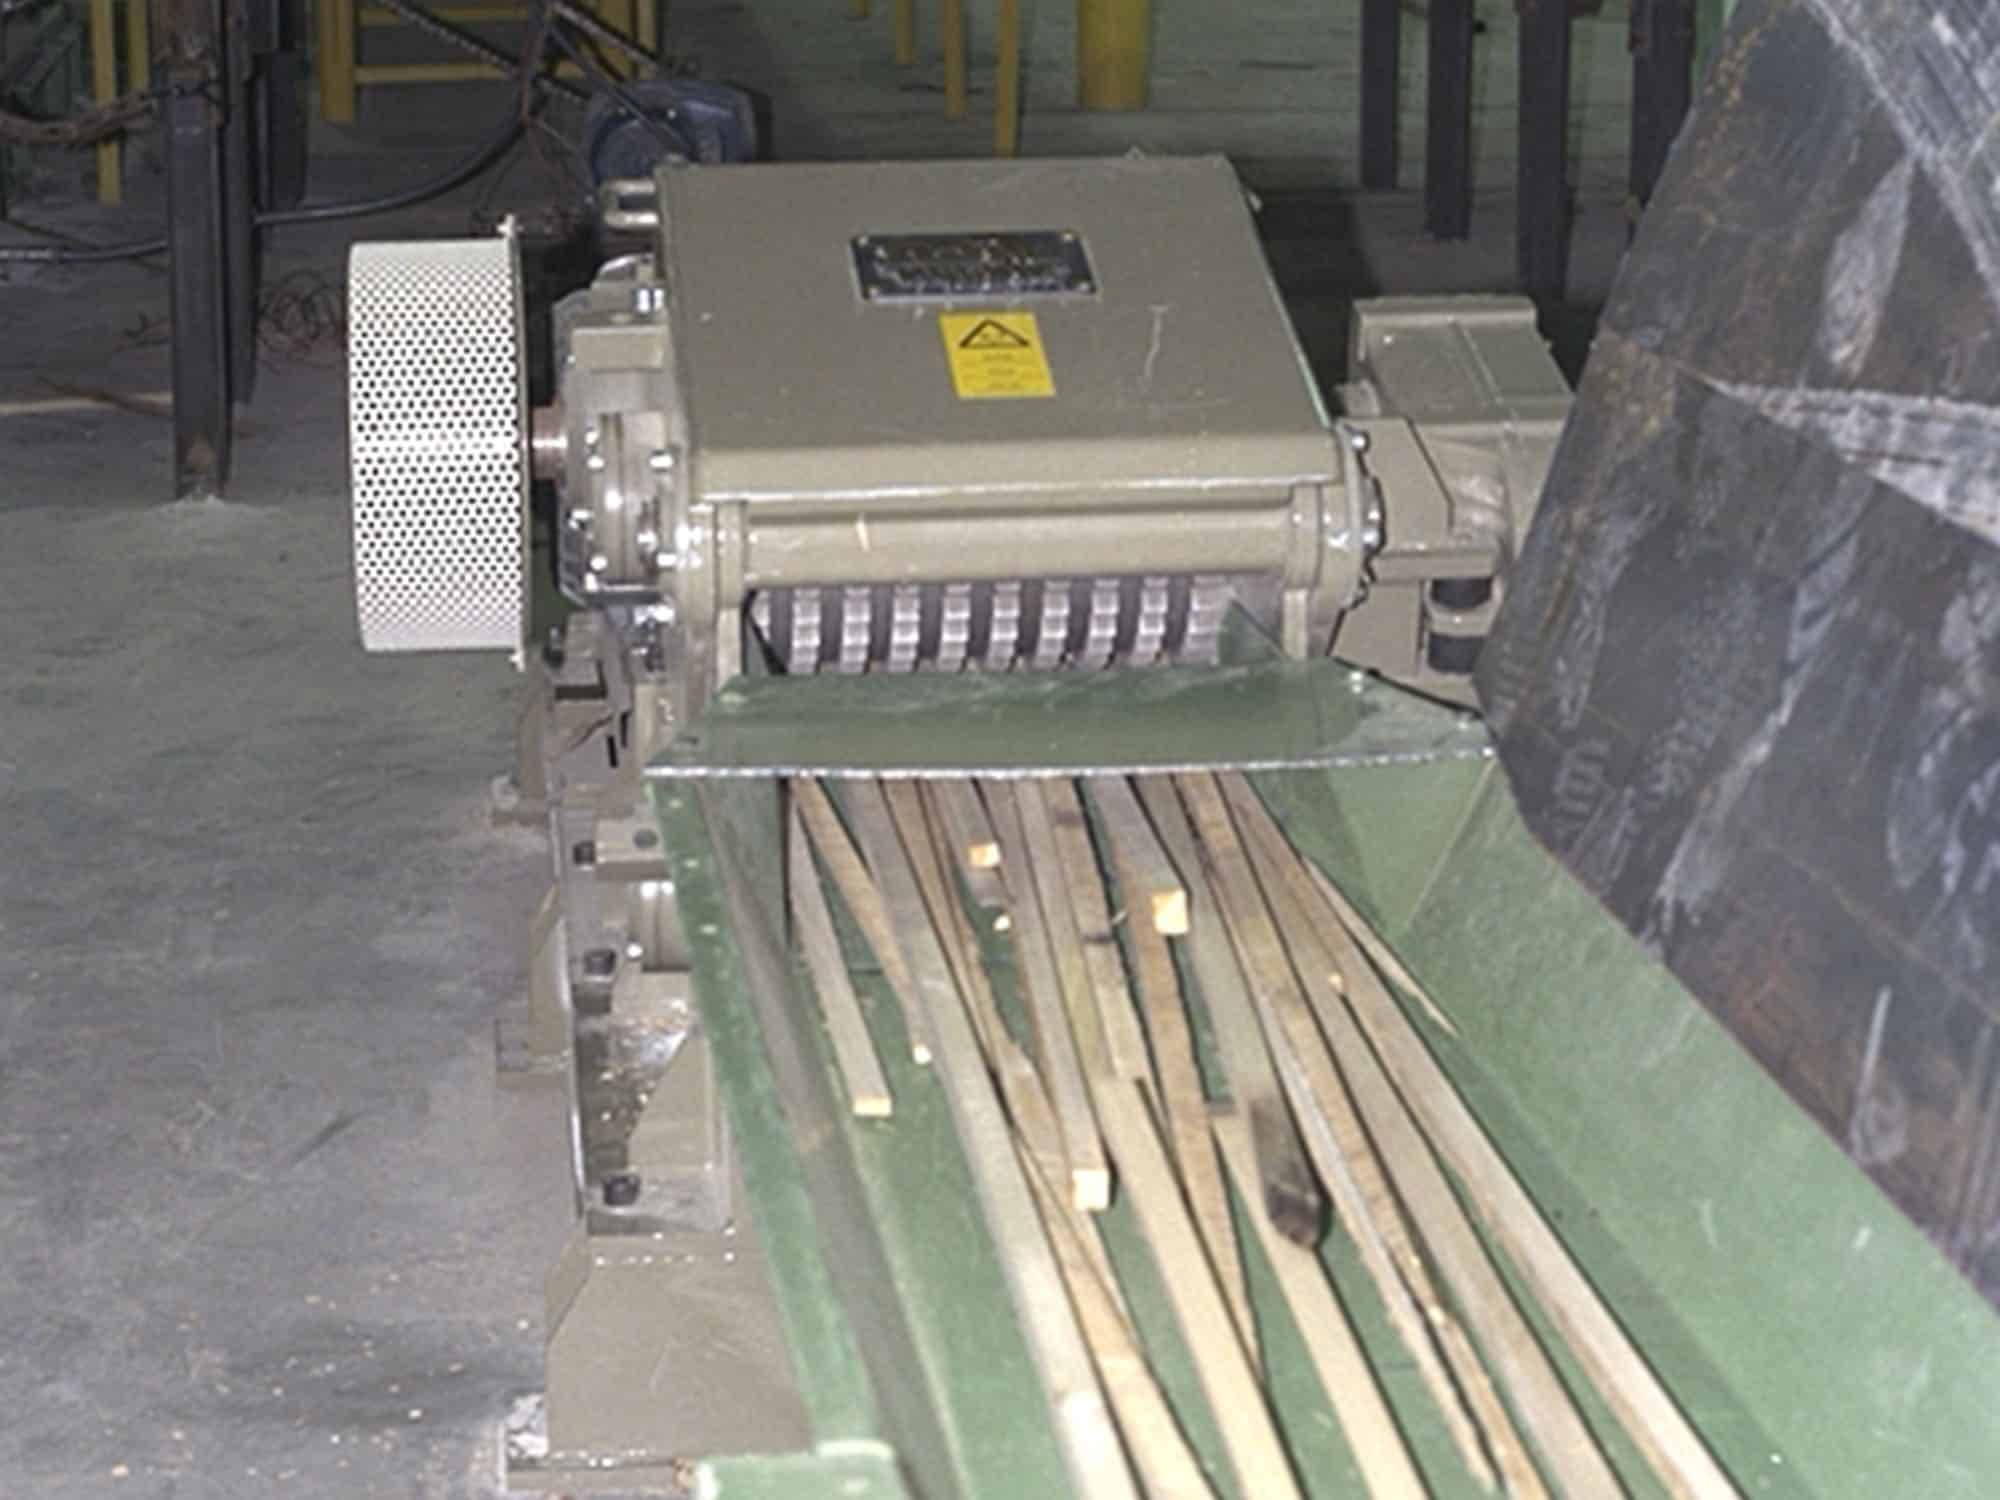 two Scanhugger HT 45-45-2 at factory as end of production line off-cut wood shredder with vibration conveyor feeding wood sticks